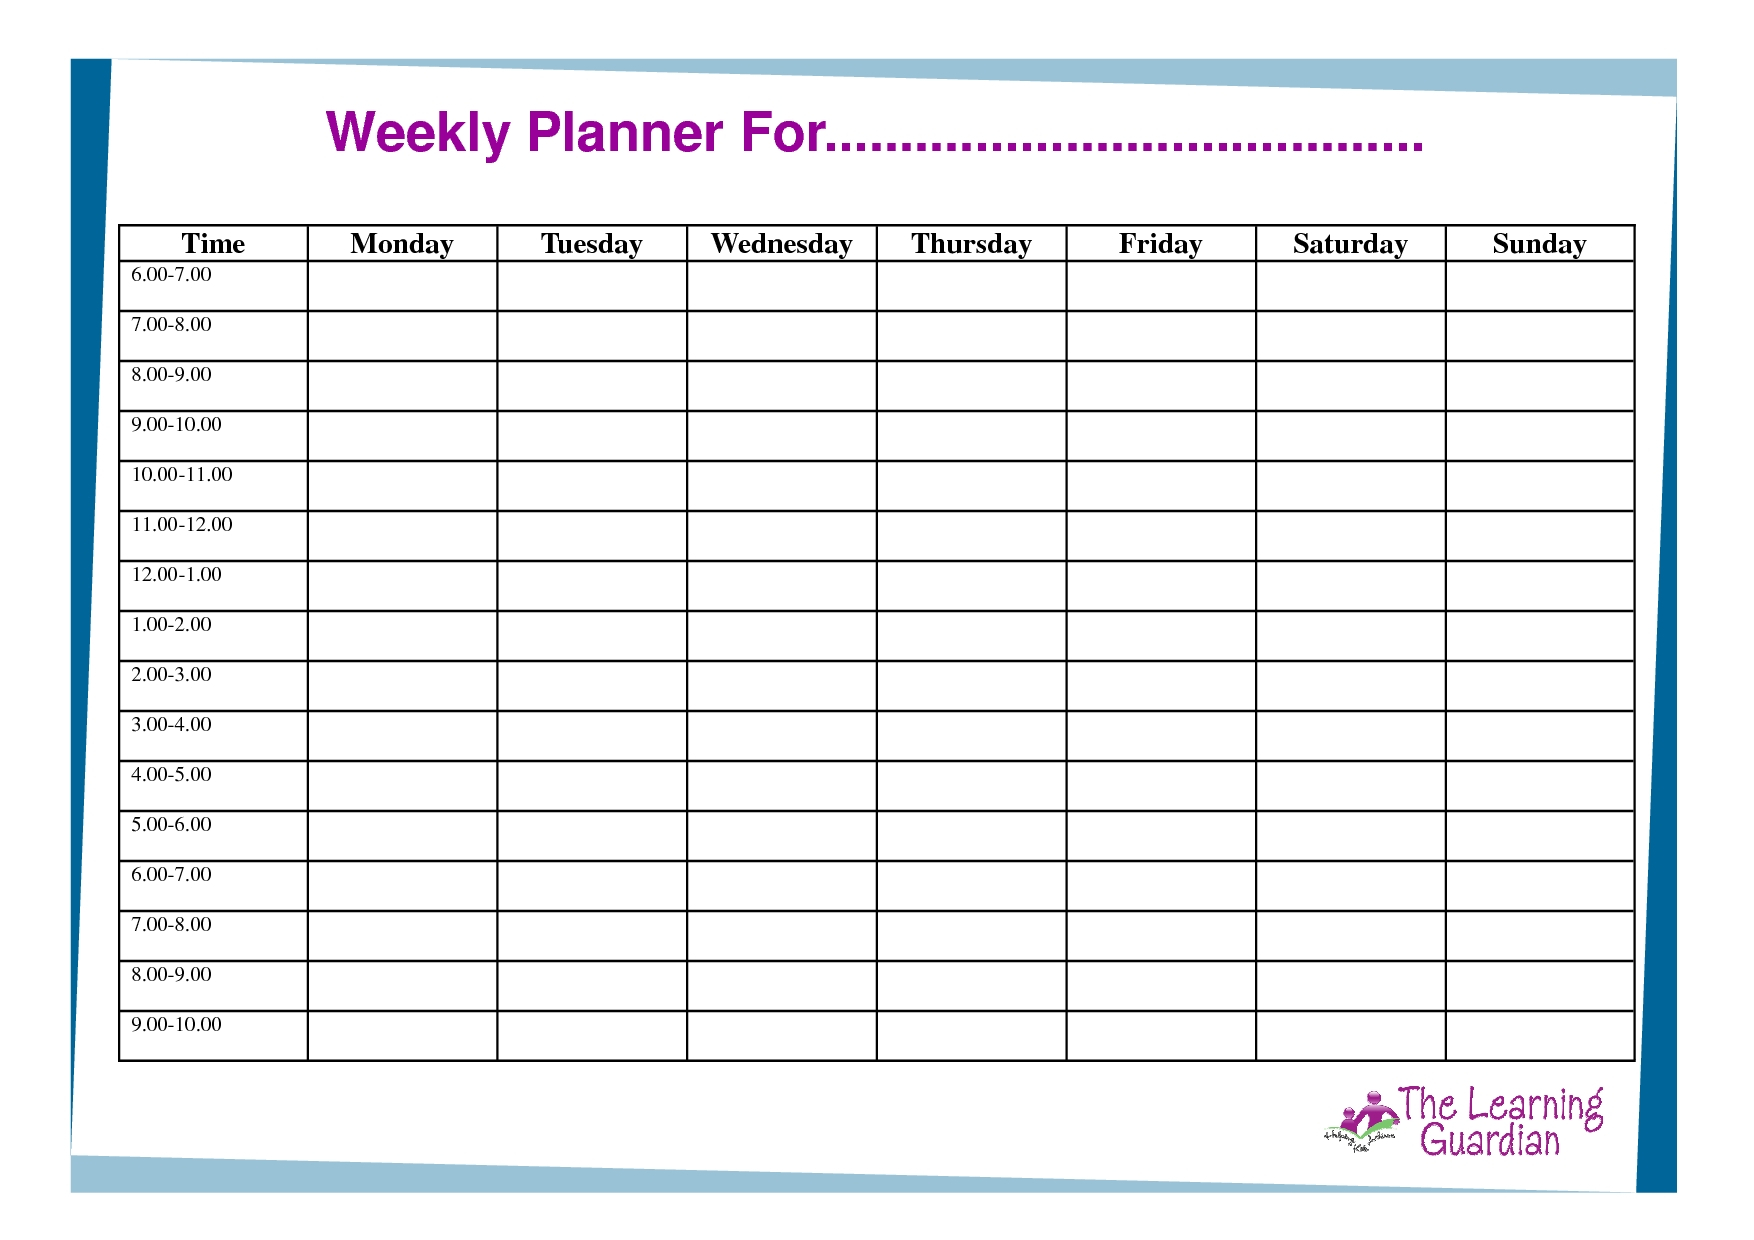 Free Printable Calendar With Time Slots | Ten Free Weekly Planner Template With Time Slots